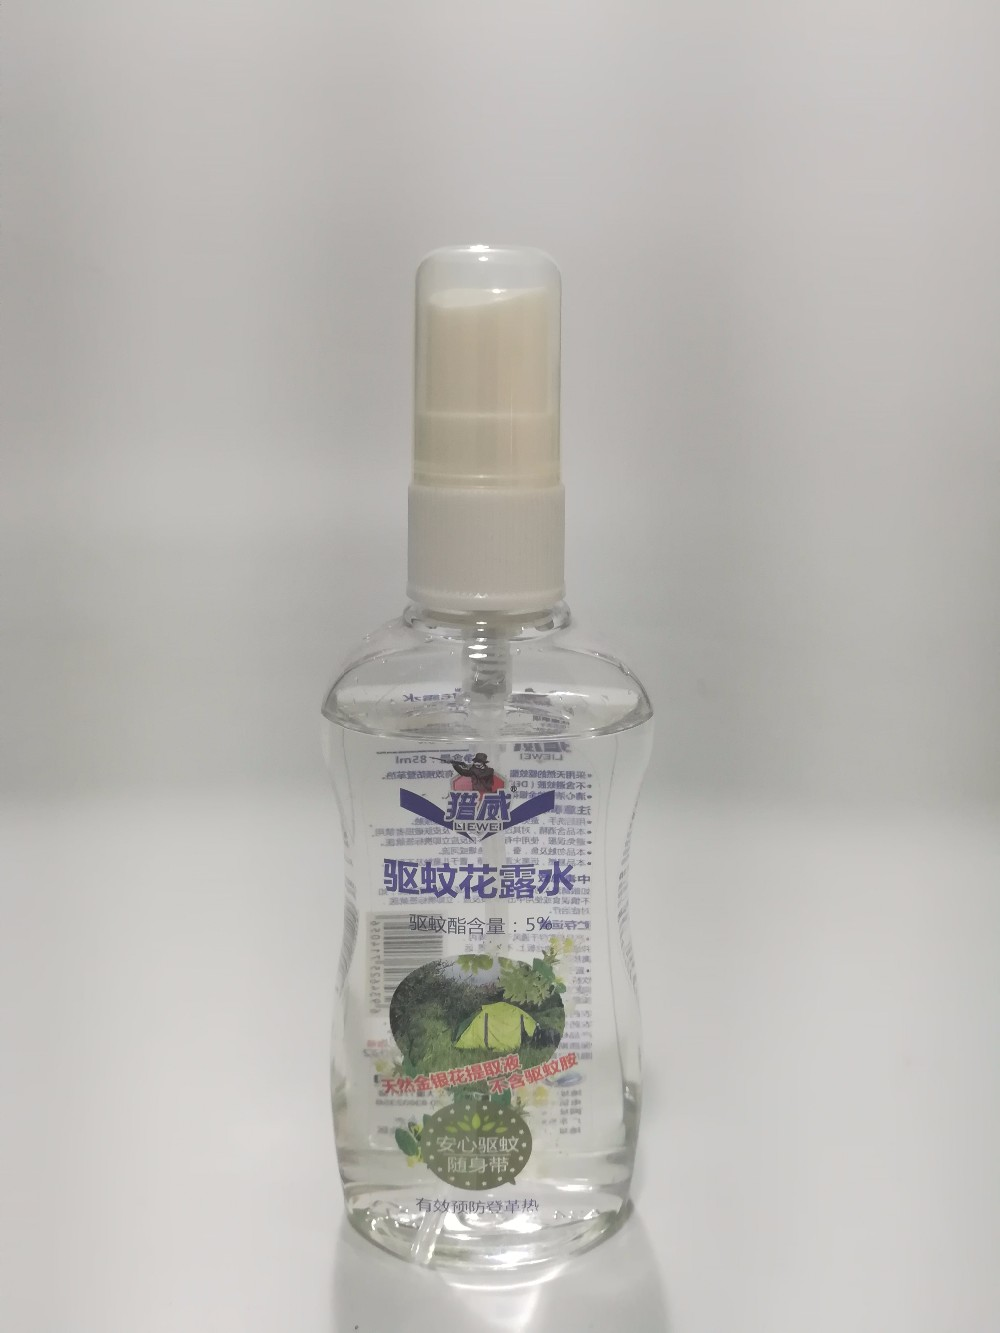 85ml Mosquito Repellent lotion / aerosol insect repellent / anti mosquito repeller spray